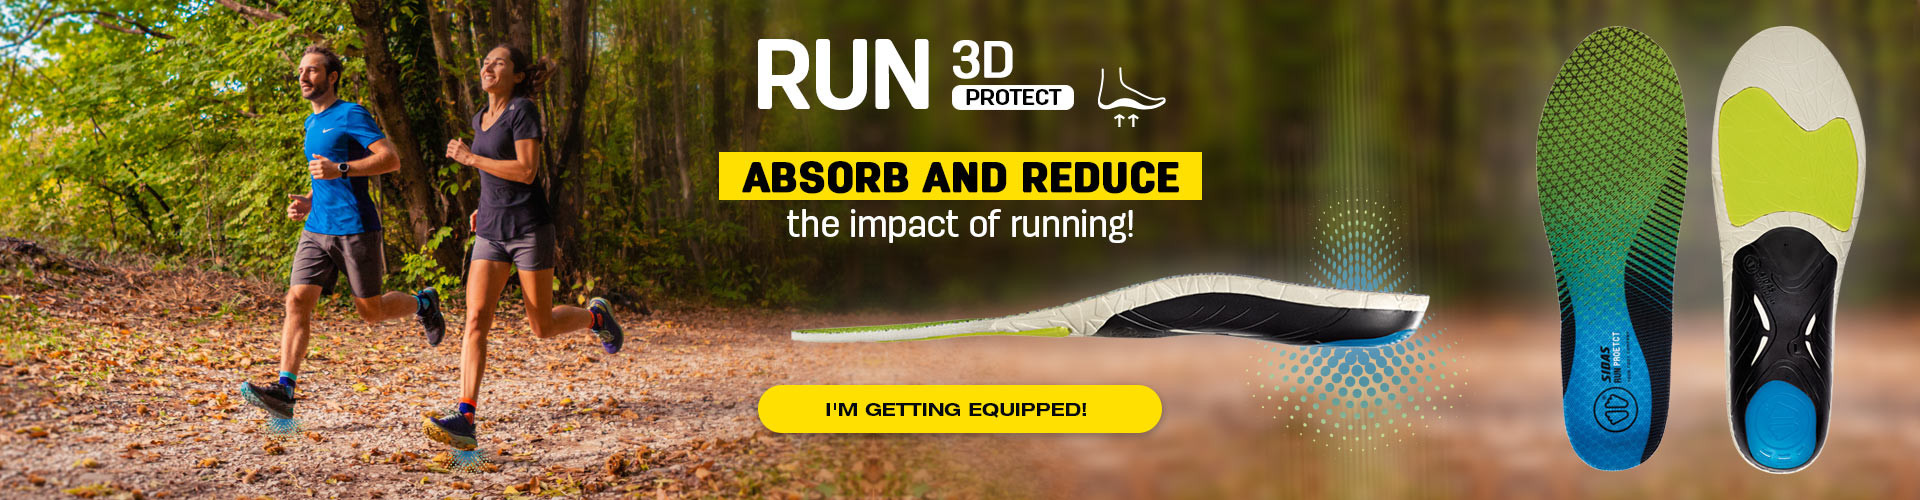 Absorb and reduce the impact of running thanks to 3D Protect insoles!